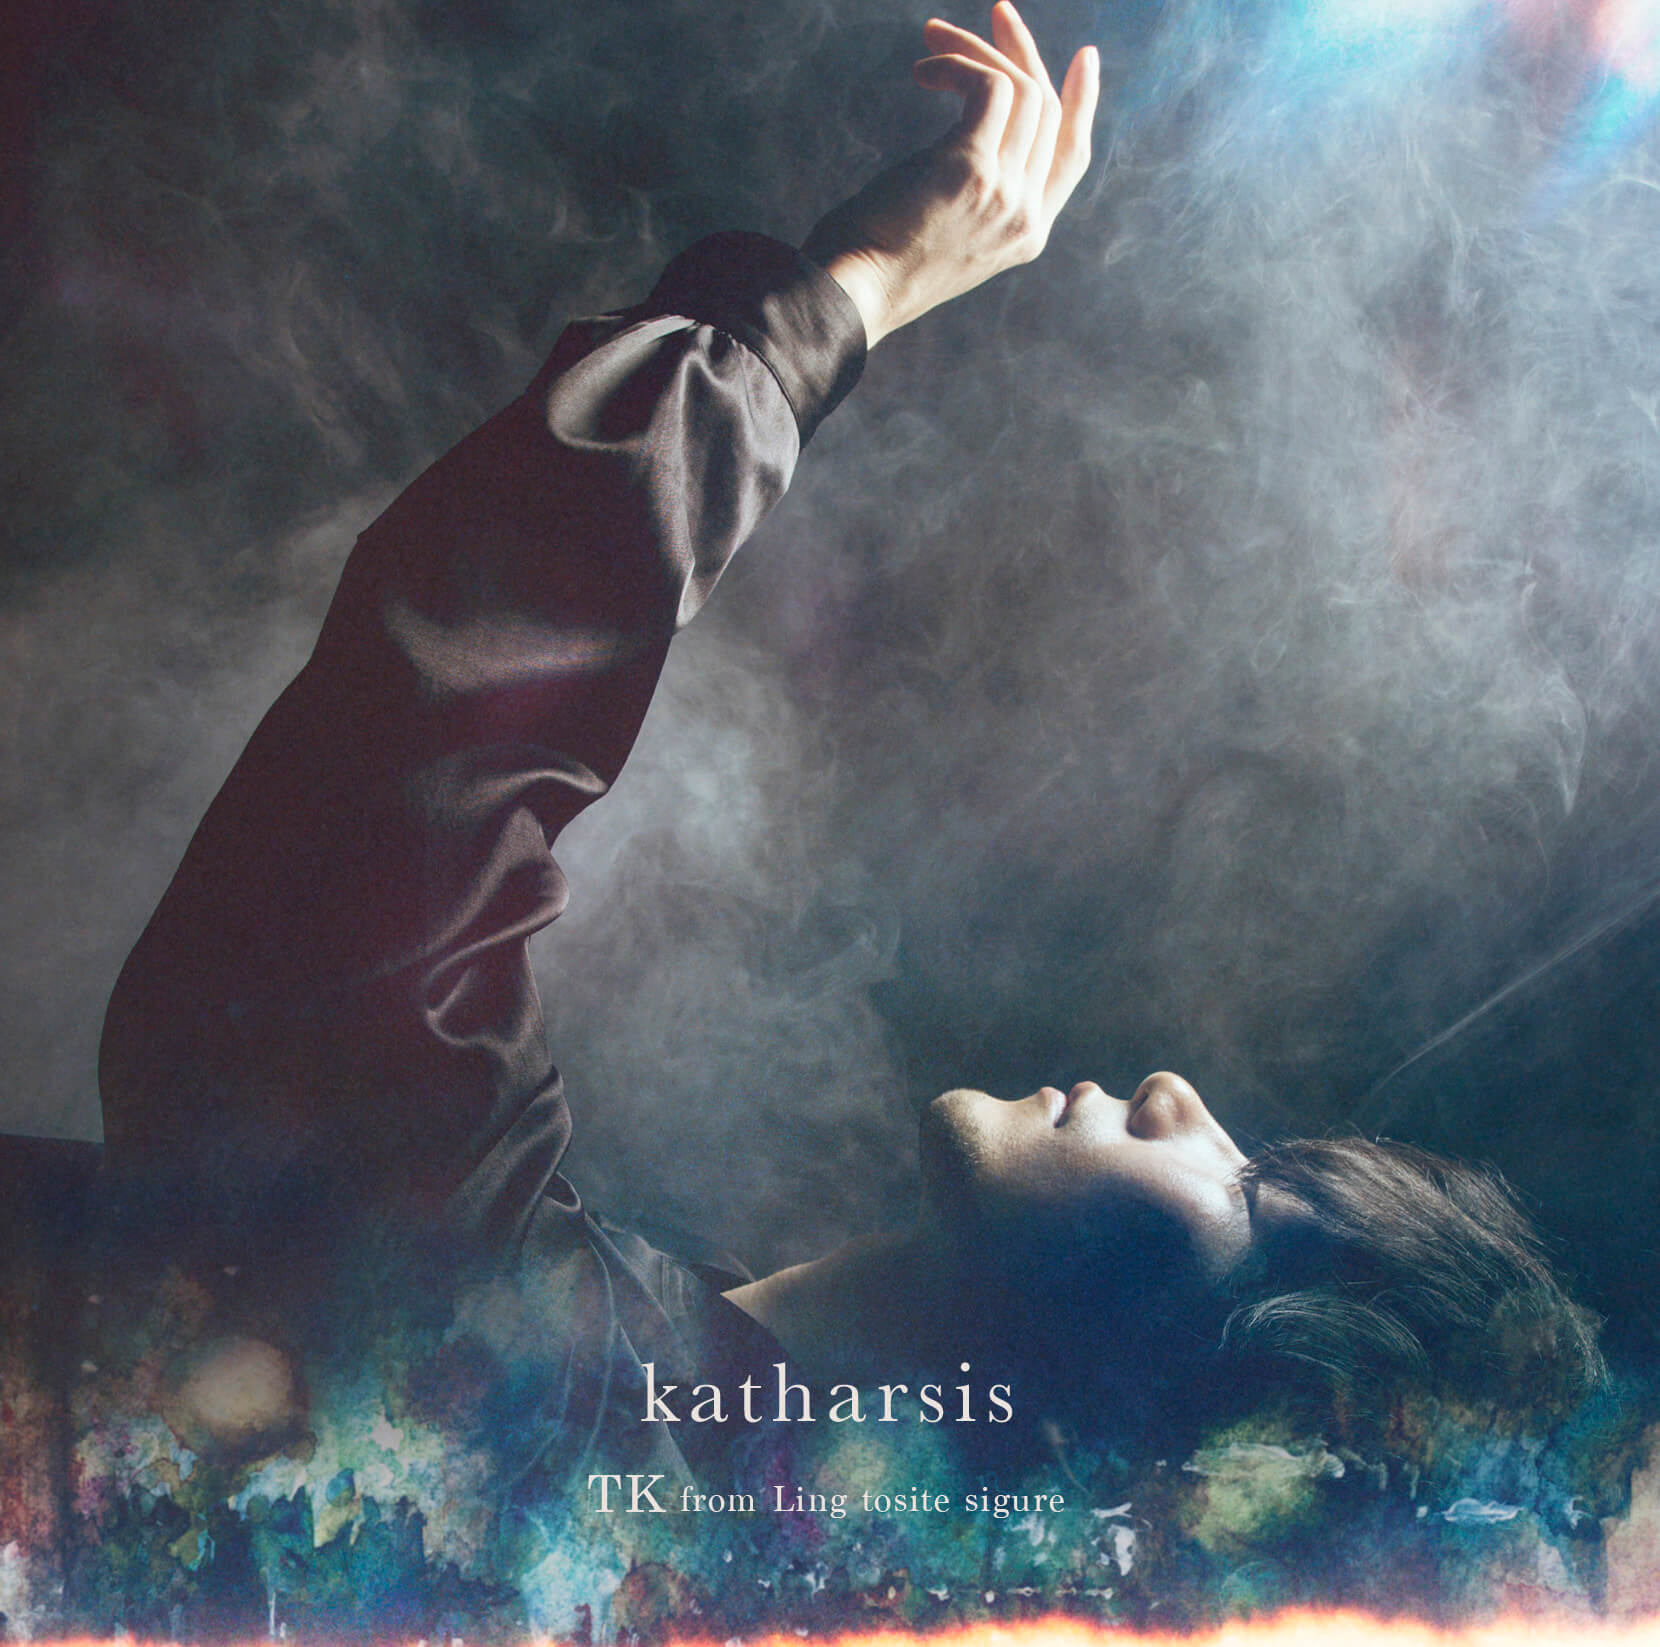 Tokyo Ghoul:re Season 2 OP Theme 'katharsis' by TK from Ling Tosite